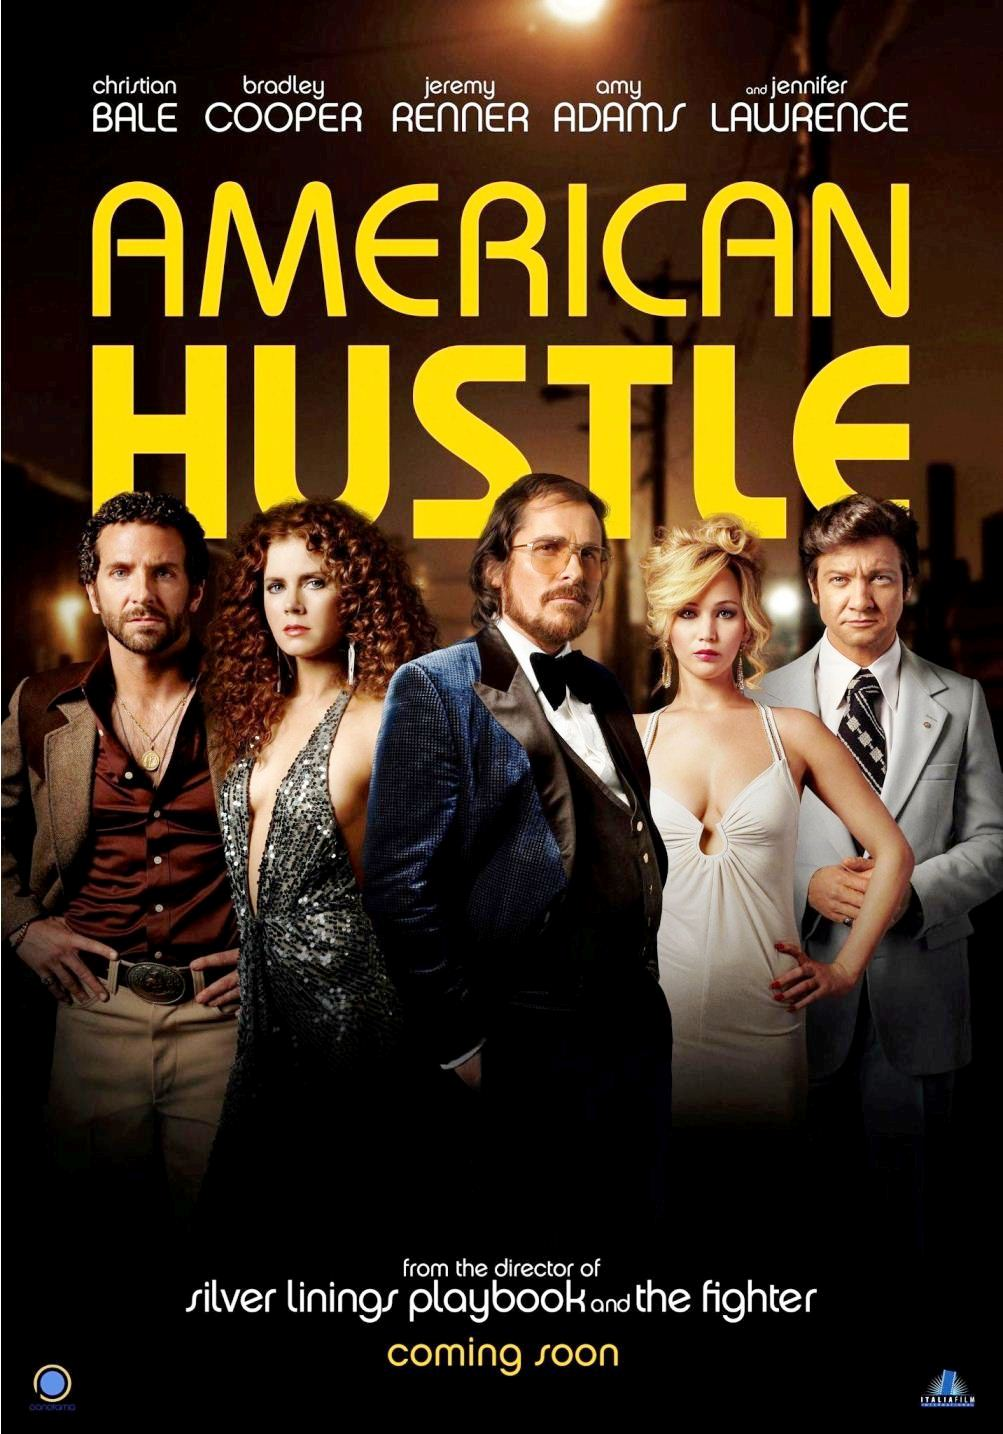 American Hustle (2013) - Cameras by Camtec Motion Picture Cameras